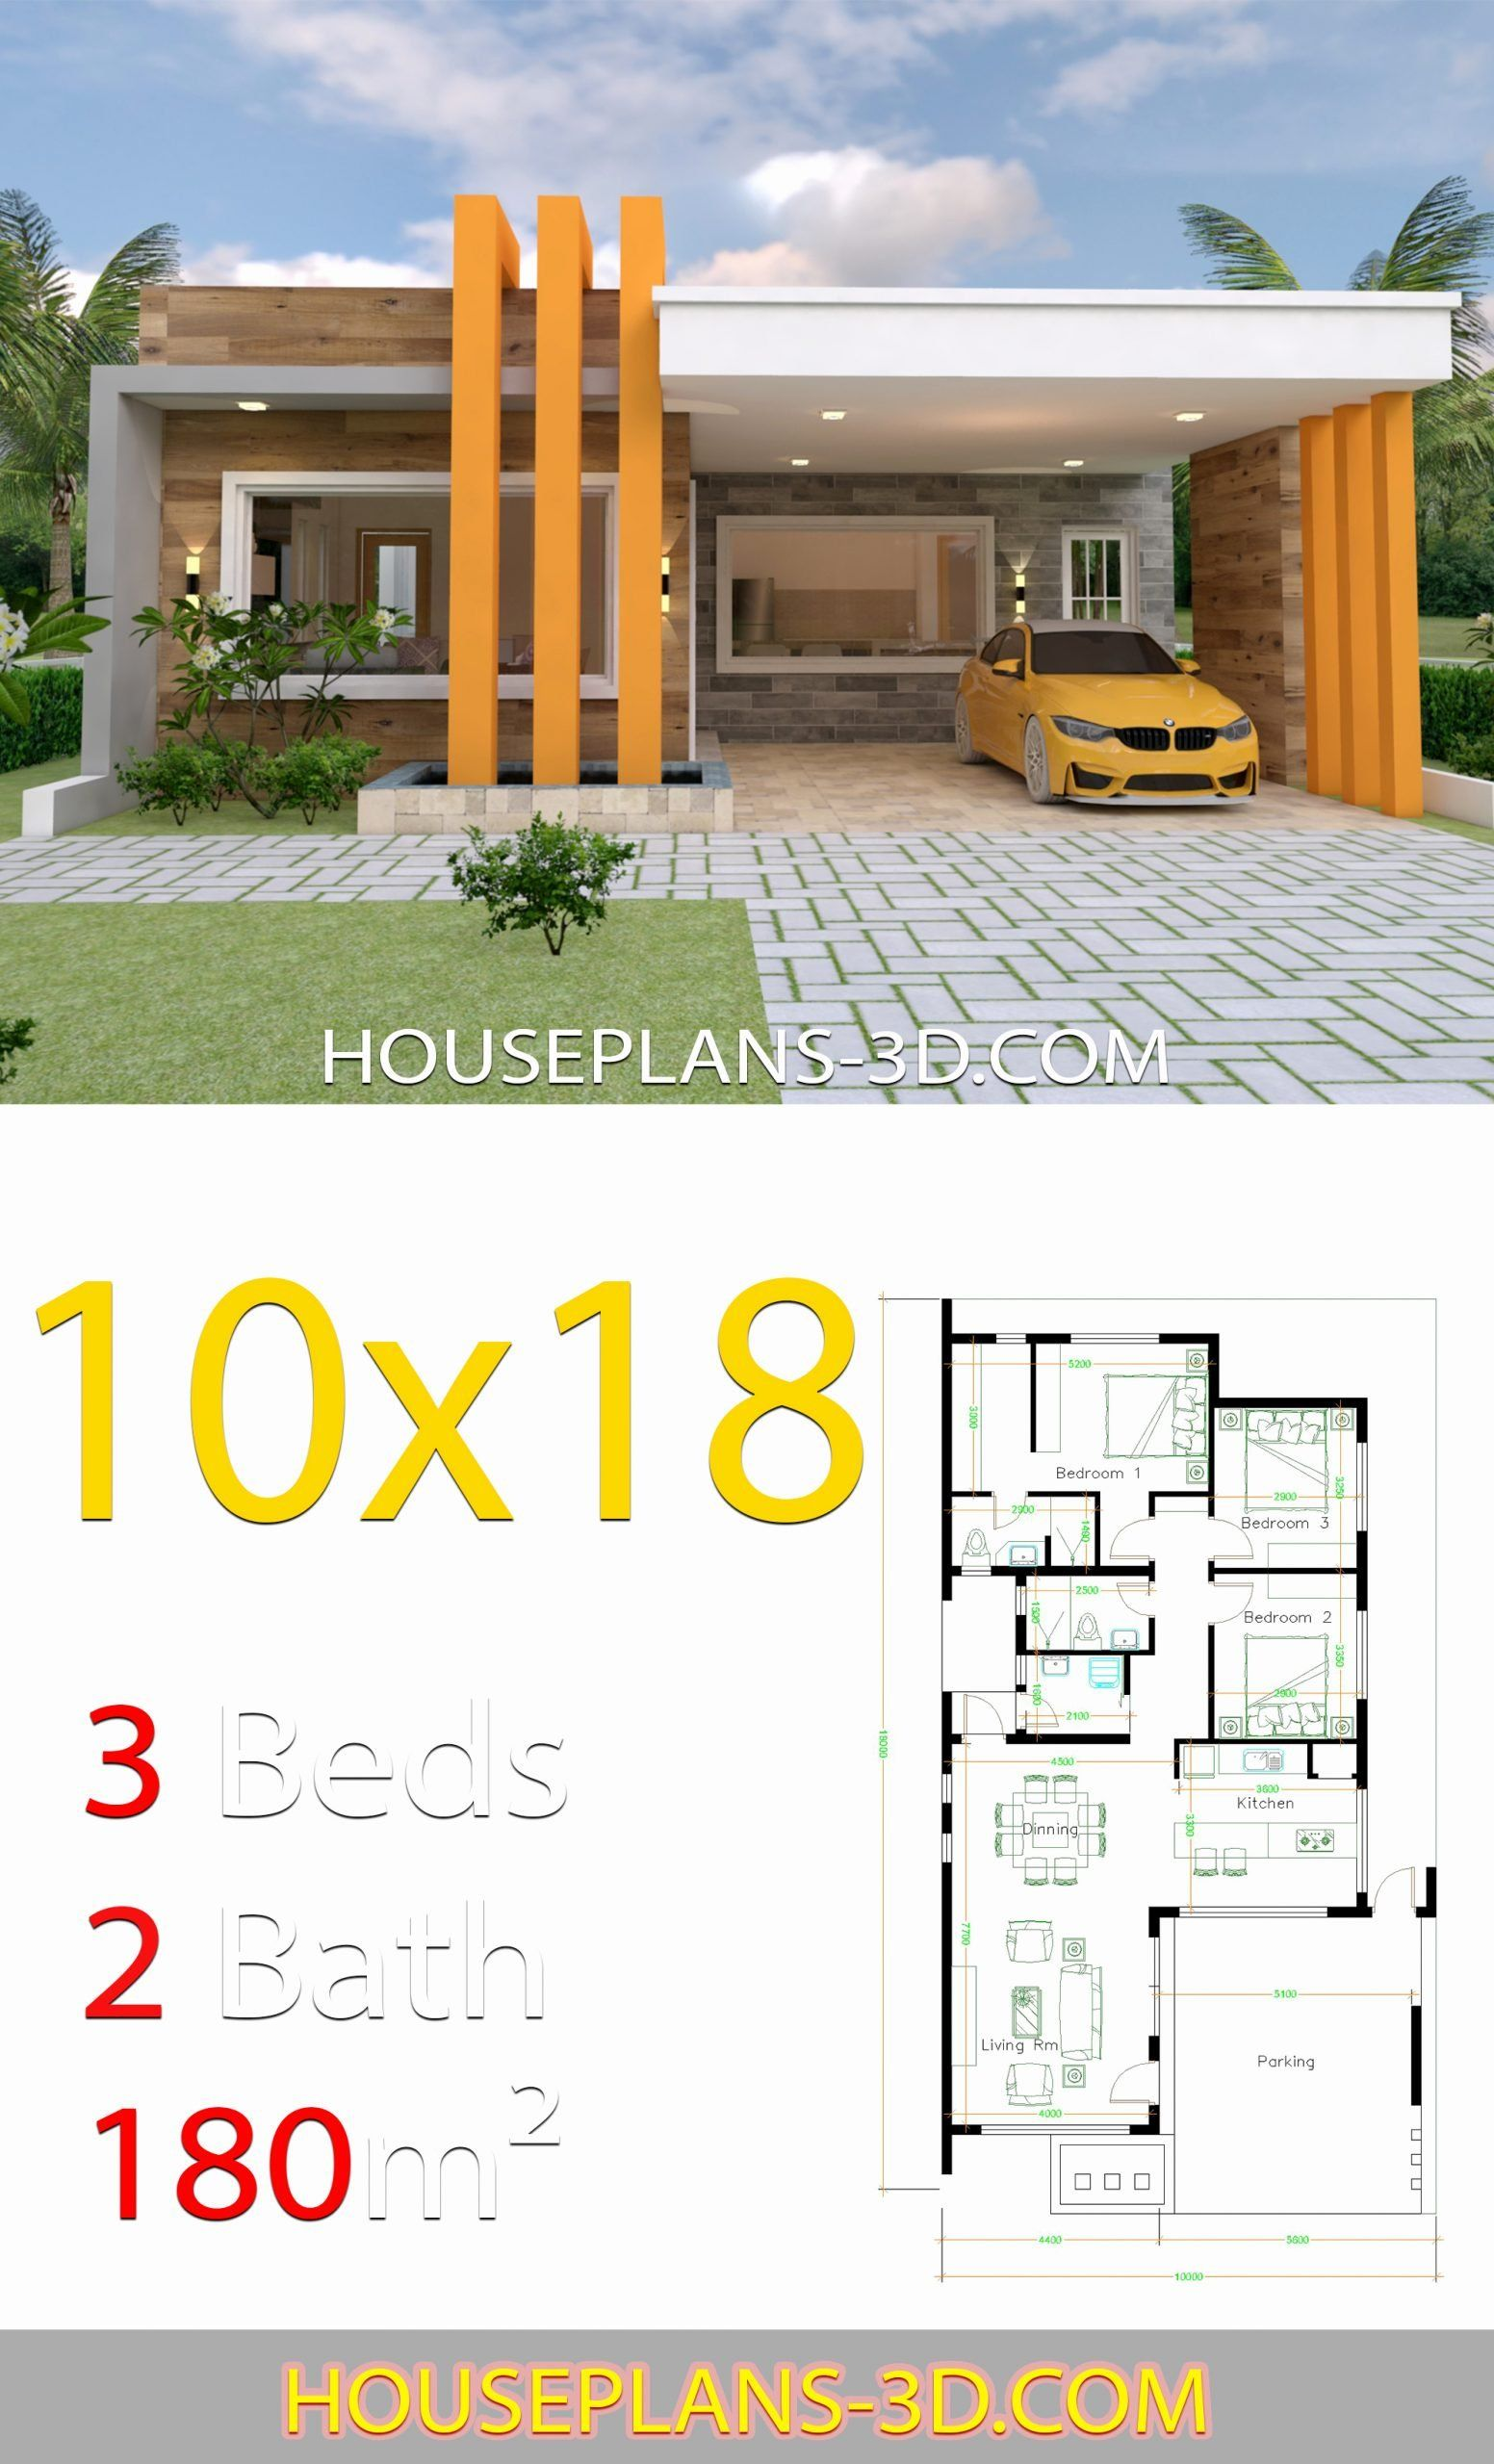 10 X 18 Kitchen Layout Awesome House Design 10 18 With 3 Bedrooms Terrace Roof Putri Best In 2020 House Construction Plan House Plans My House Plans